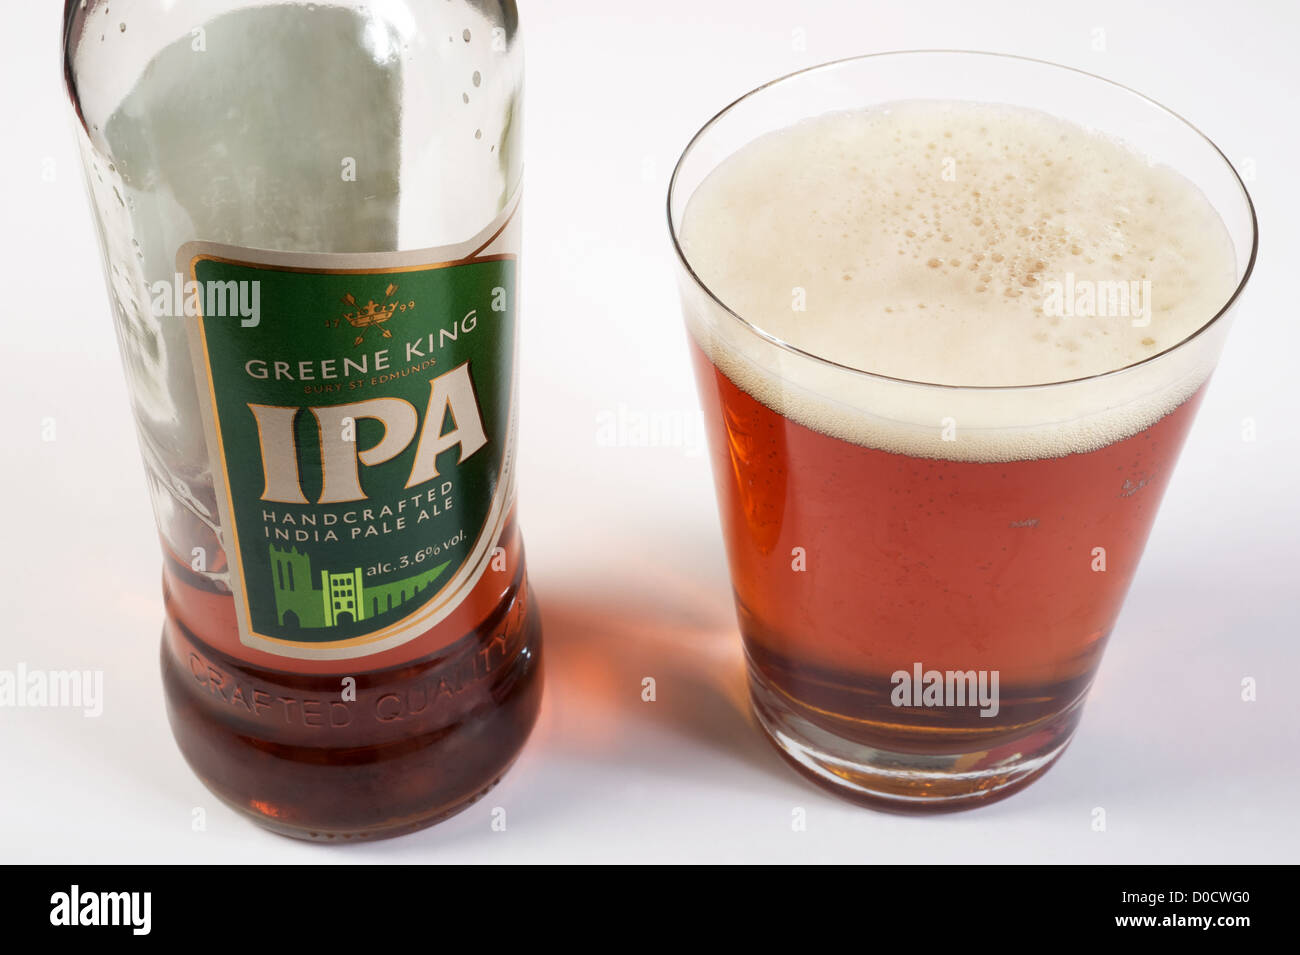 Green King IPA (India Pale Ale) - Stock Image